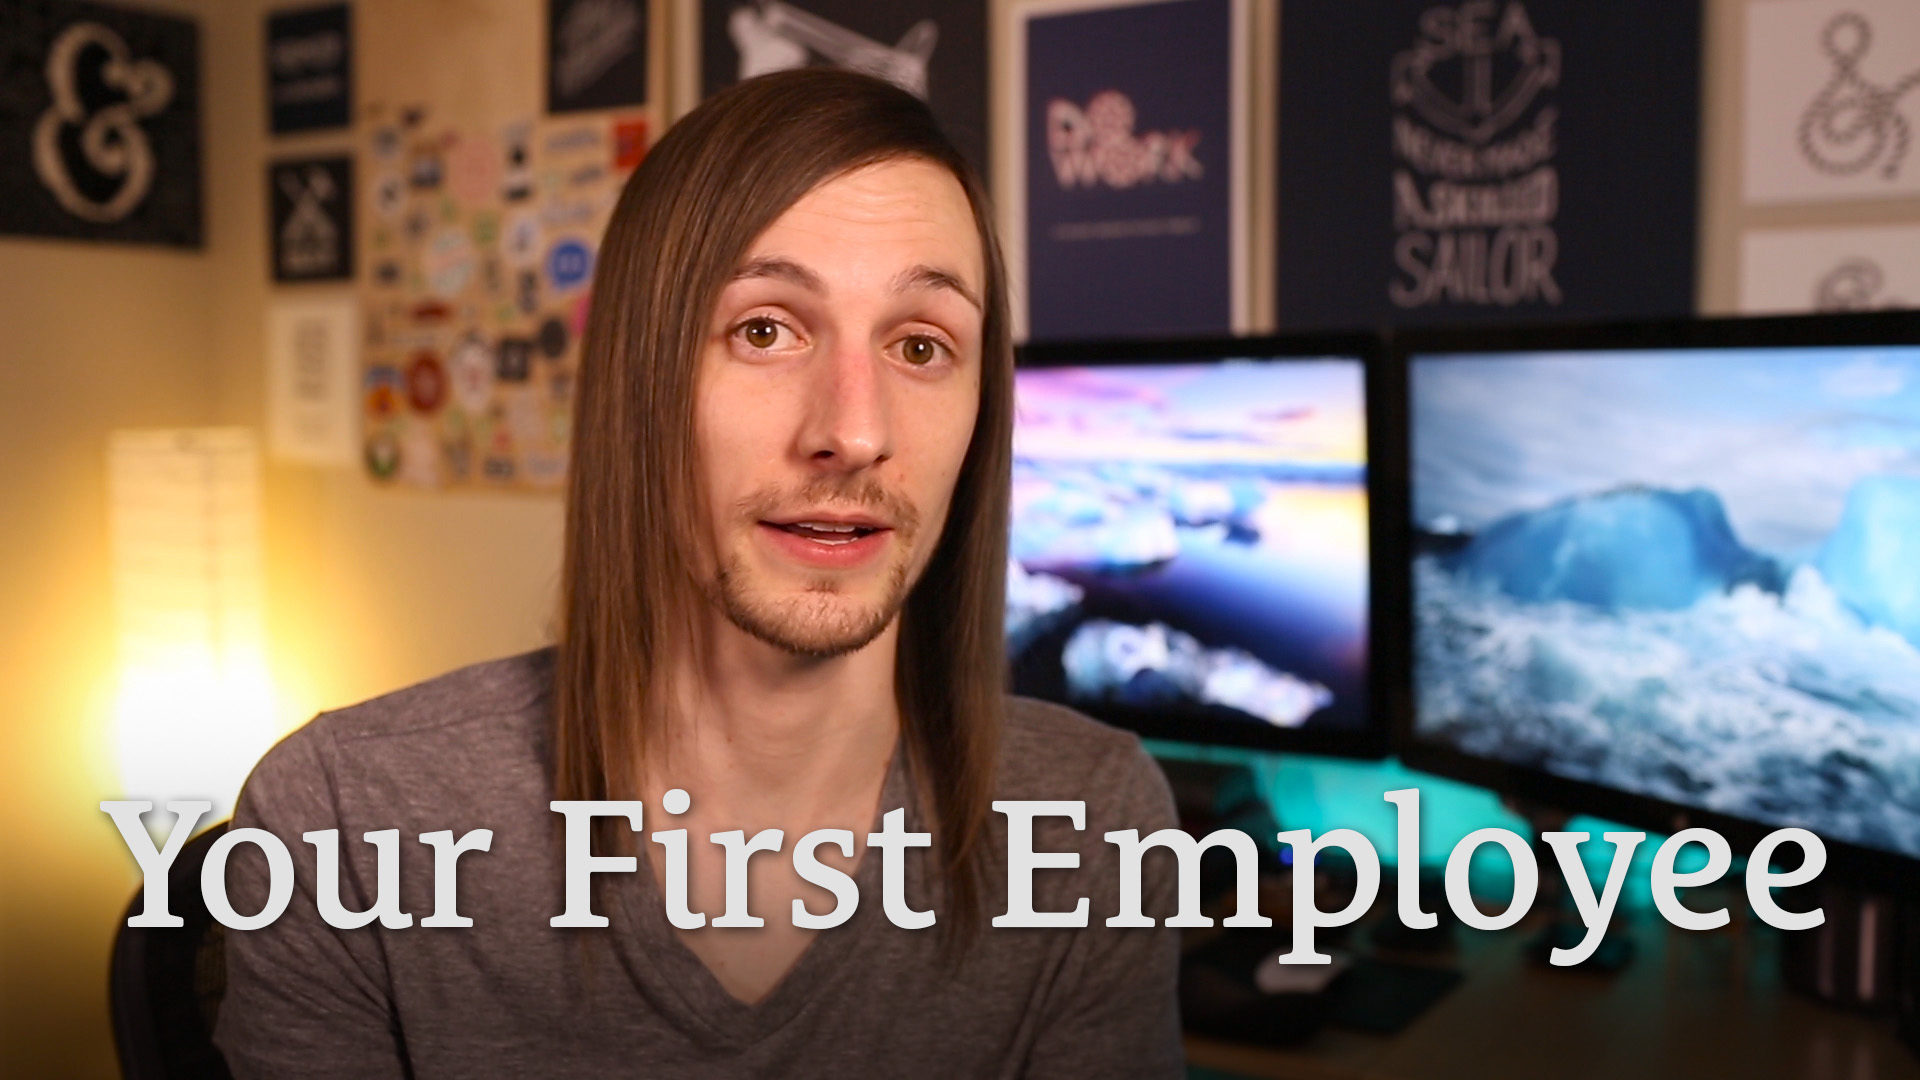 Hiring Your First Employee: A Different Way to Think About It